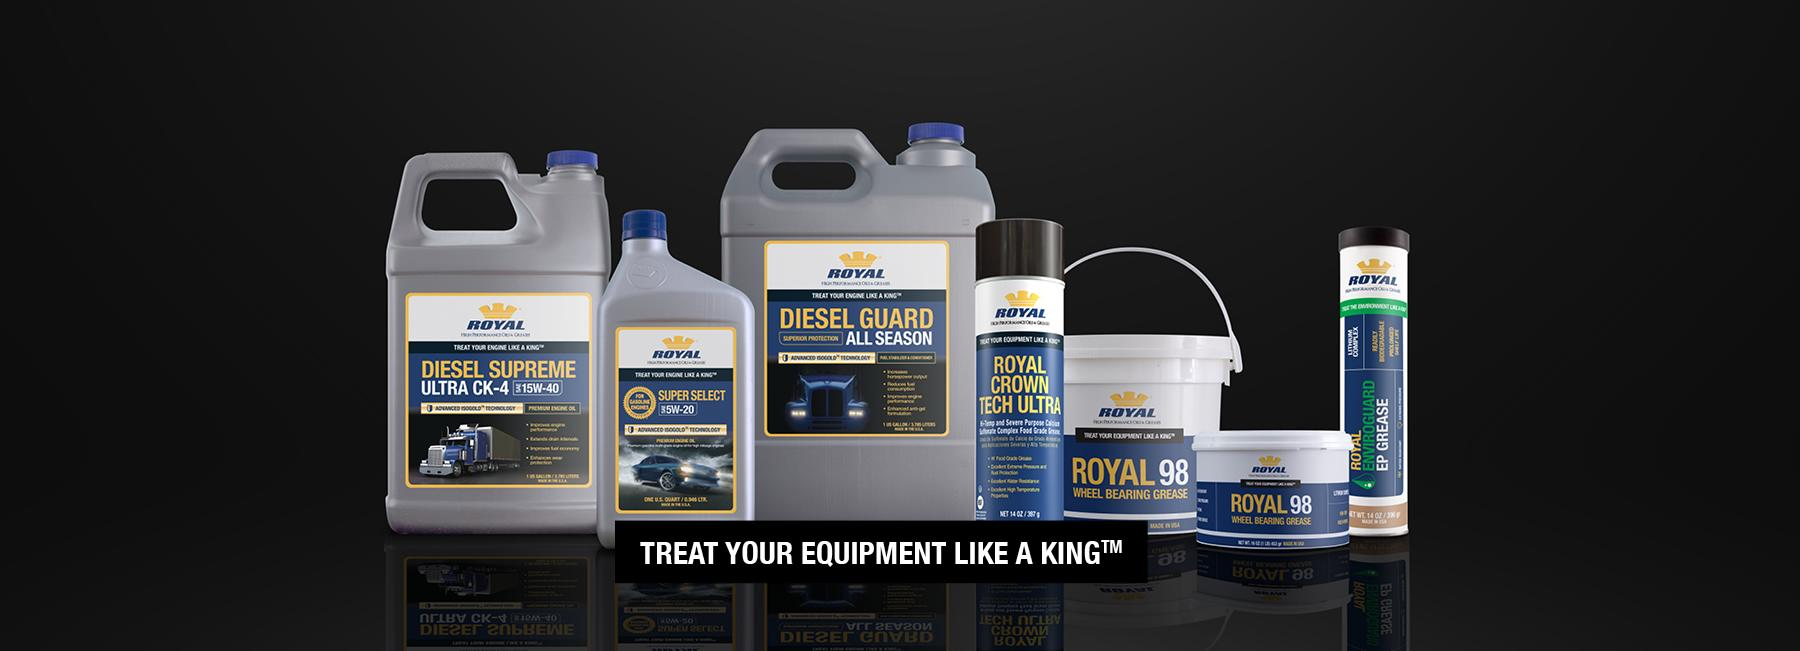 Engine Oil Lubricant business in Nigeria